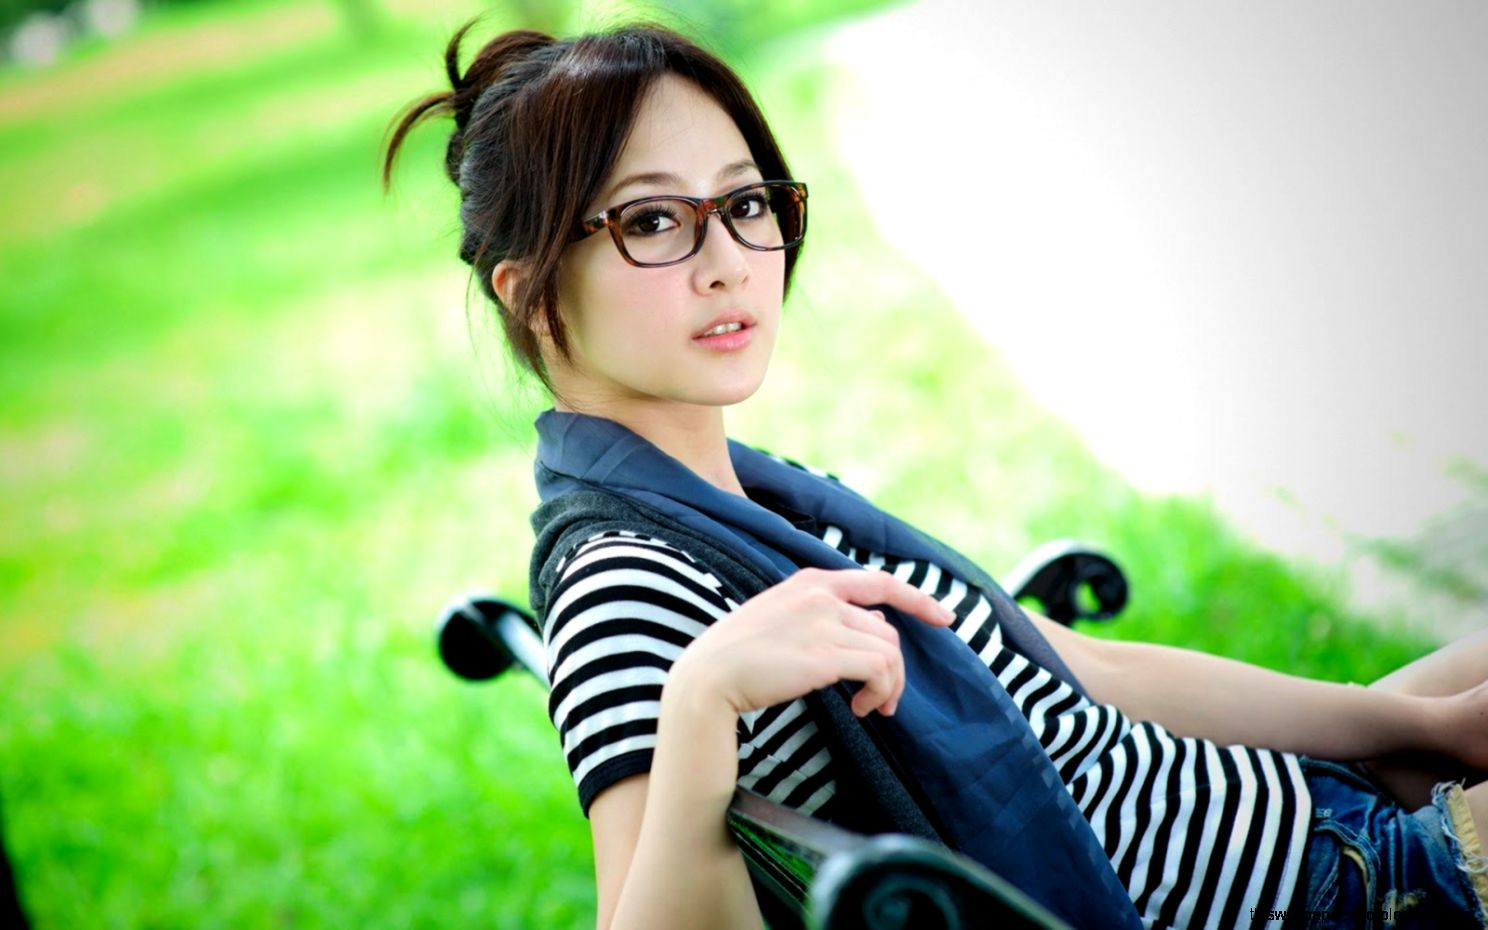 cute girls photos free download | this wallpapers